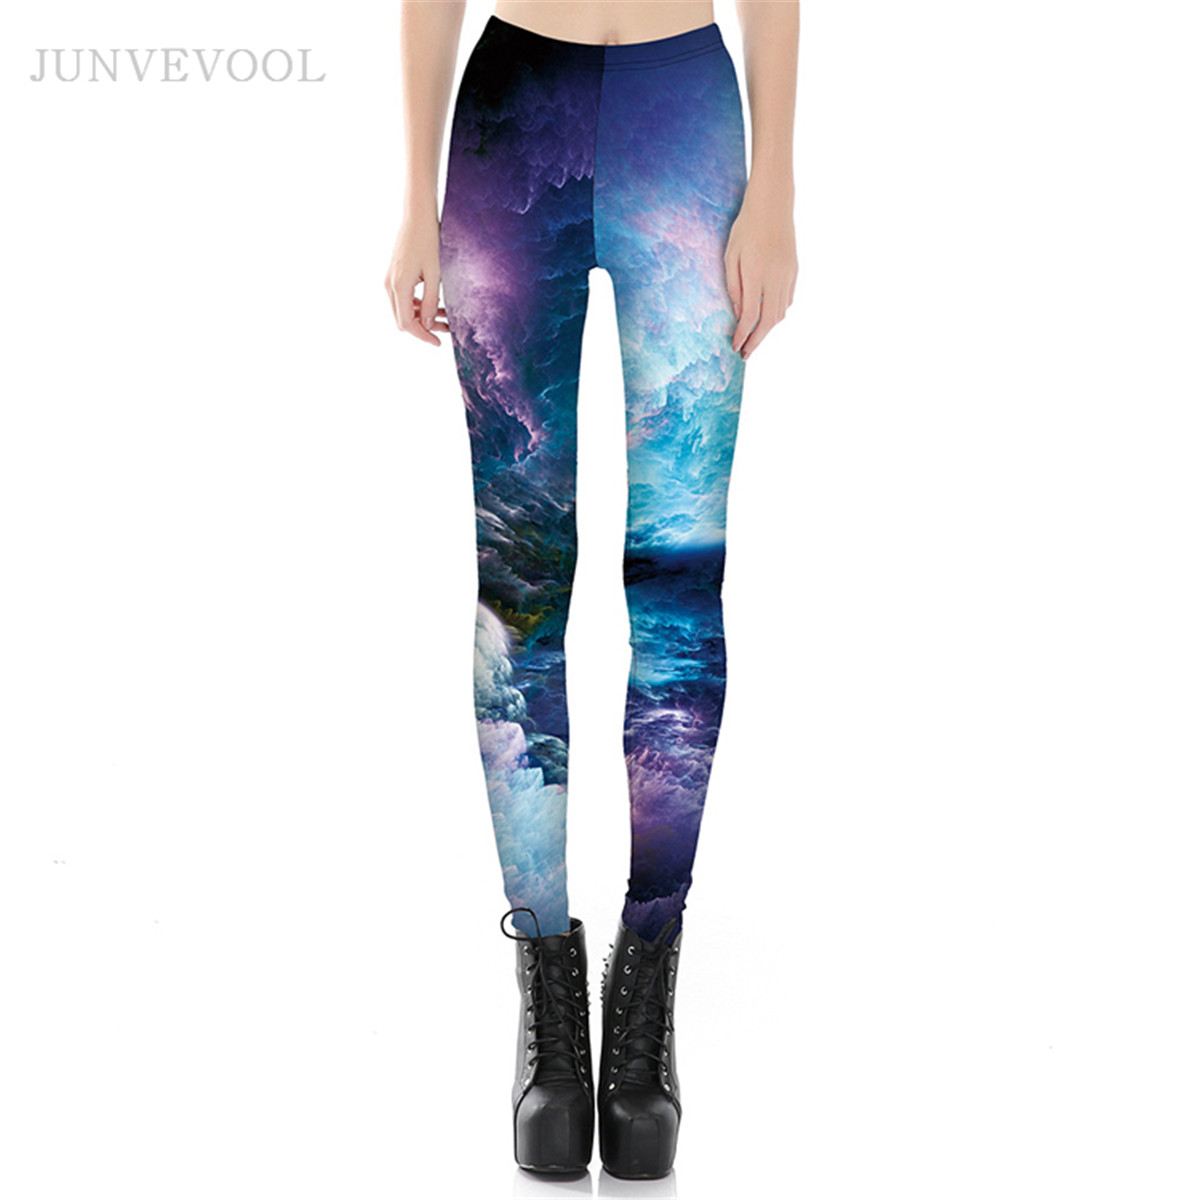 Splendid View Leggings Women Sunset Crop Leggins New Arrival Cloud Sea Digital Pant Ladies Gothic Fitness Rock Punk Sportswear